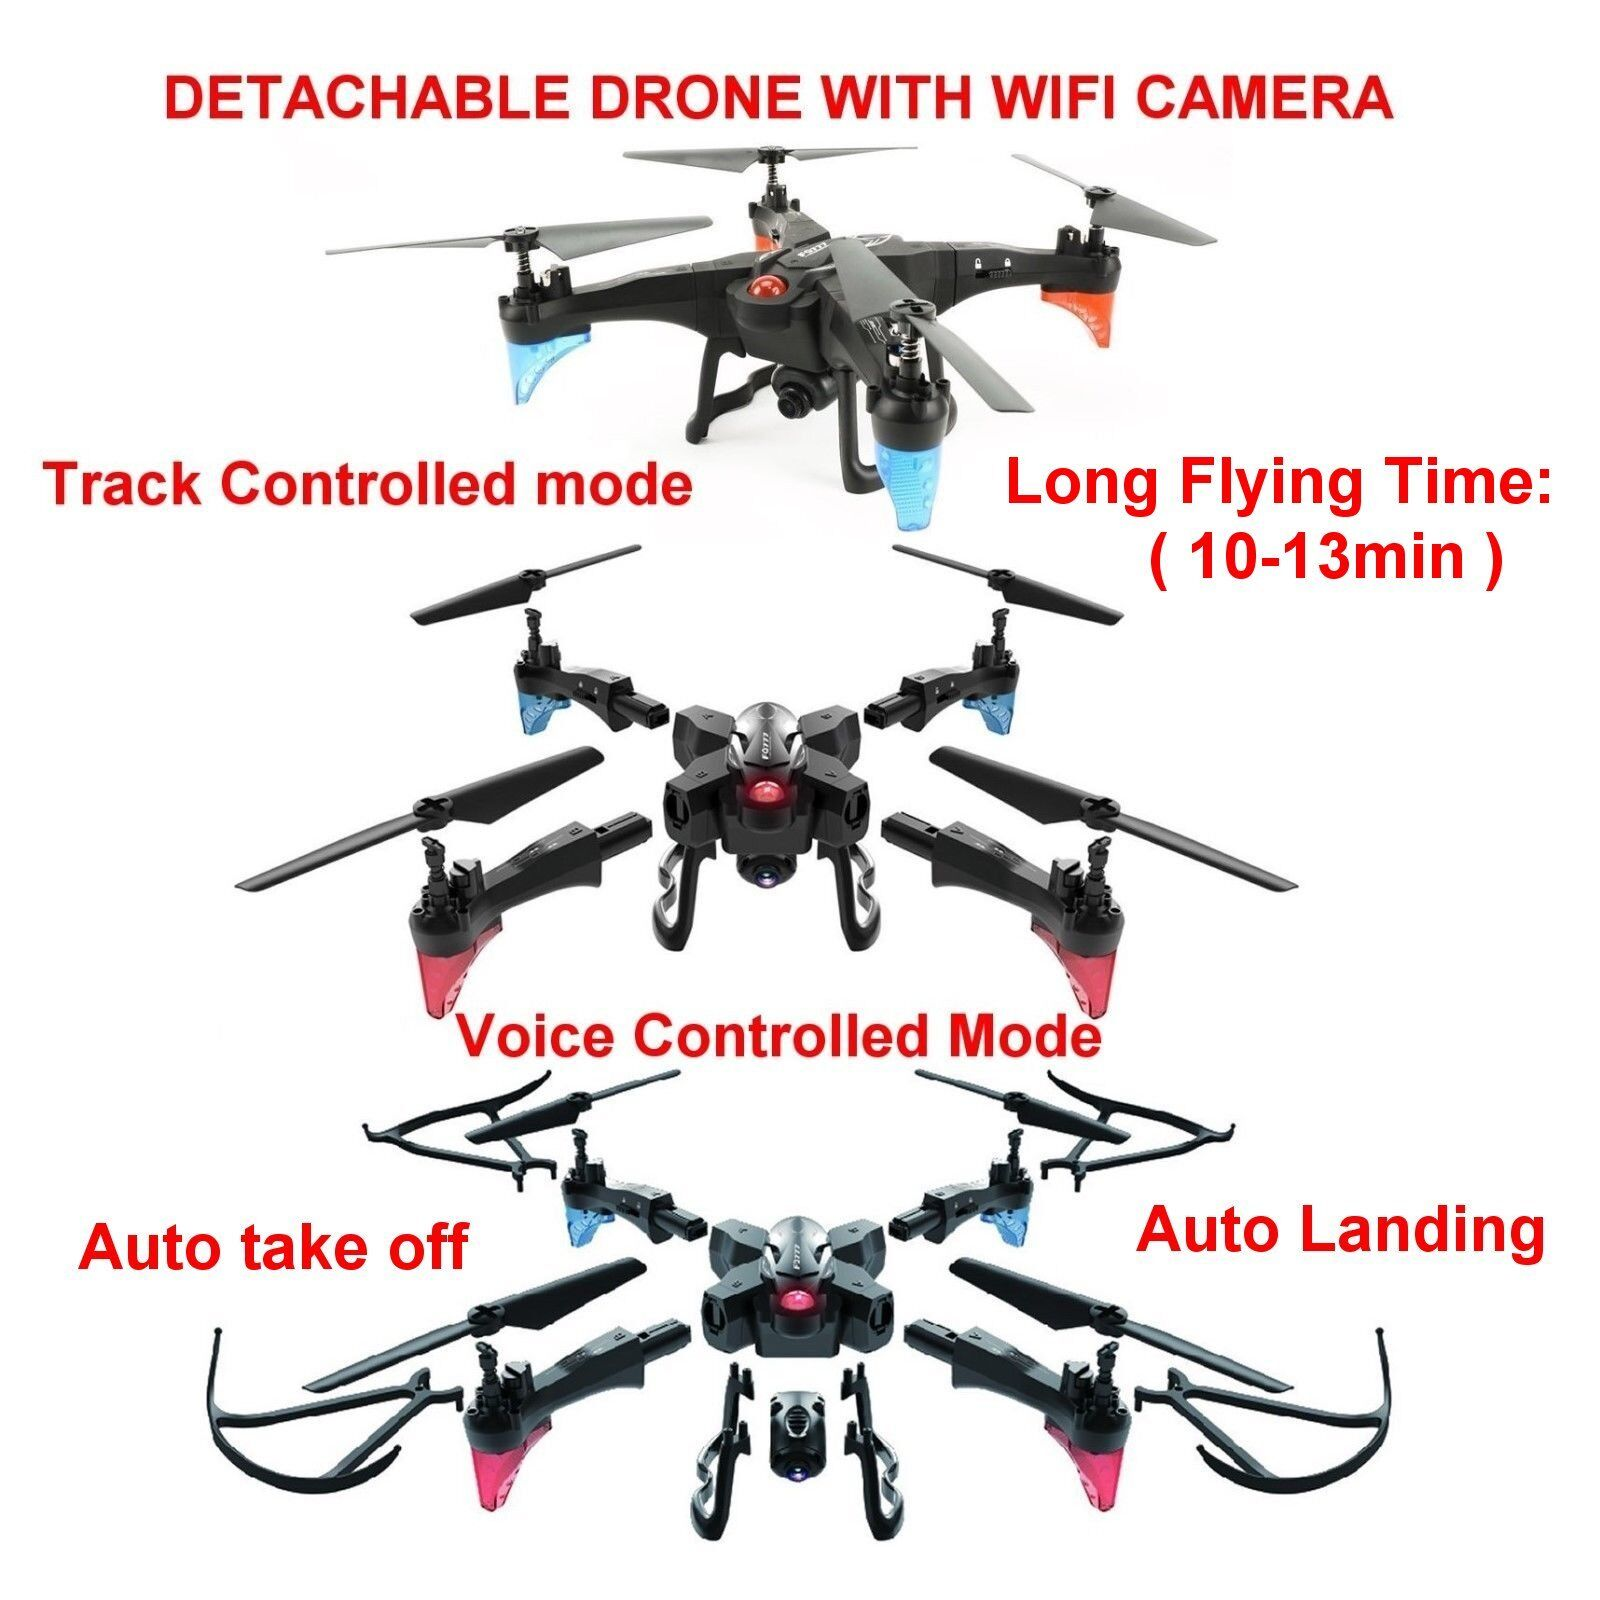 Drone Detachable FQ20 with HD and WIFI Video Camera Live View FPV Quadcopter UK